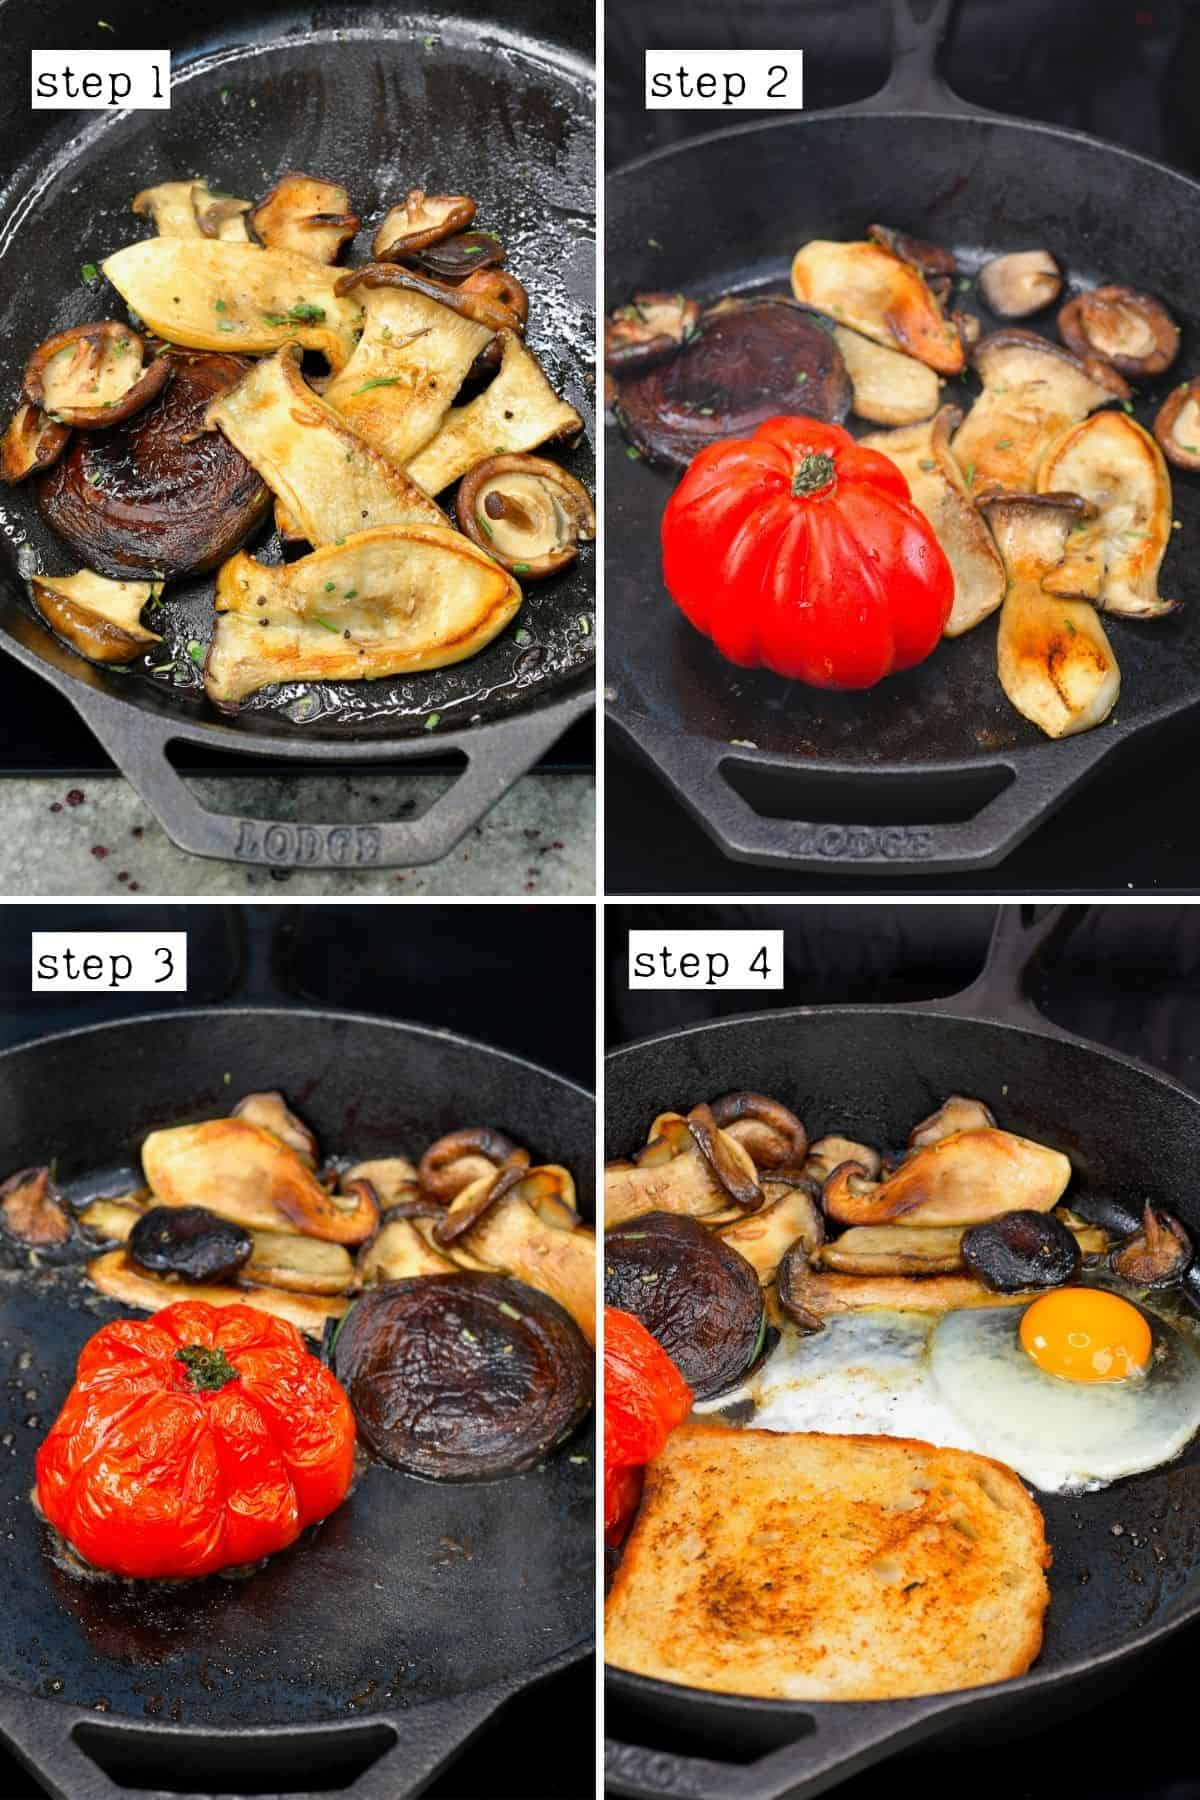 Steps for cooking English breakfast